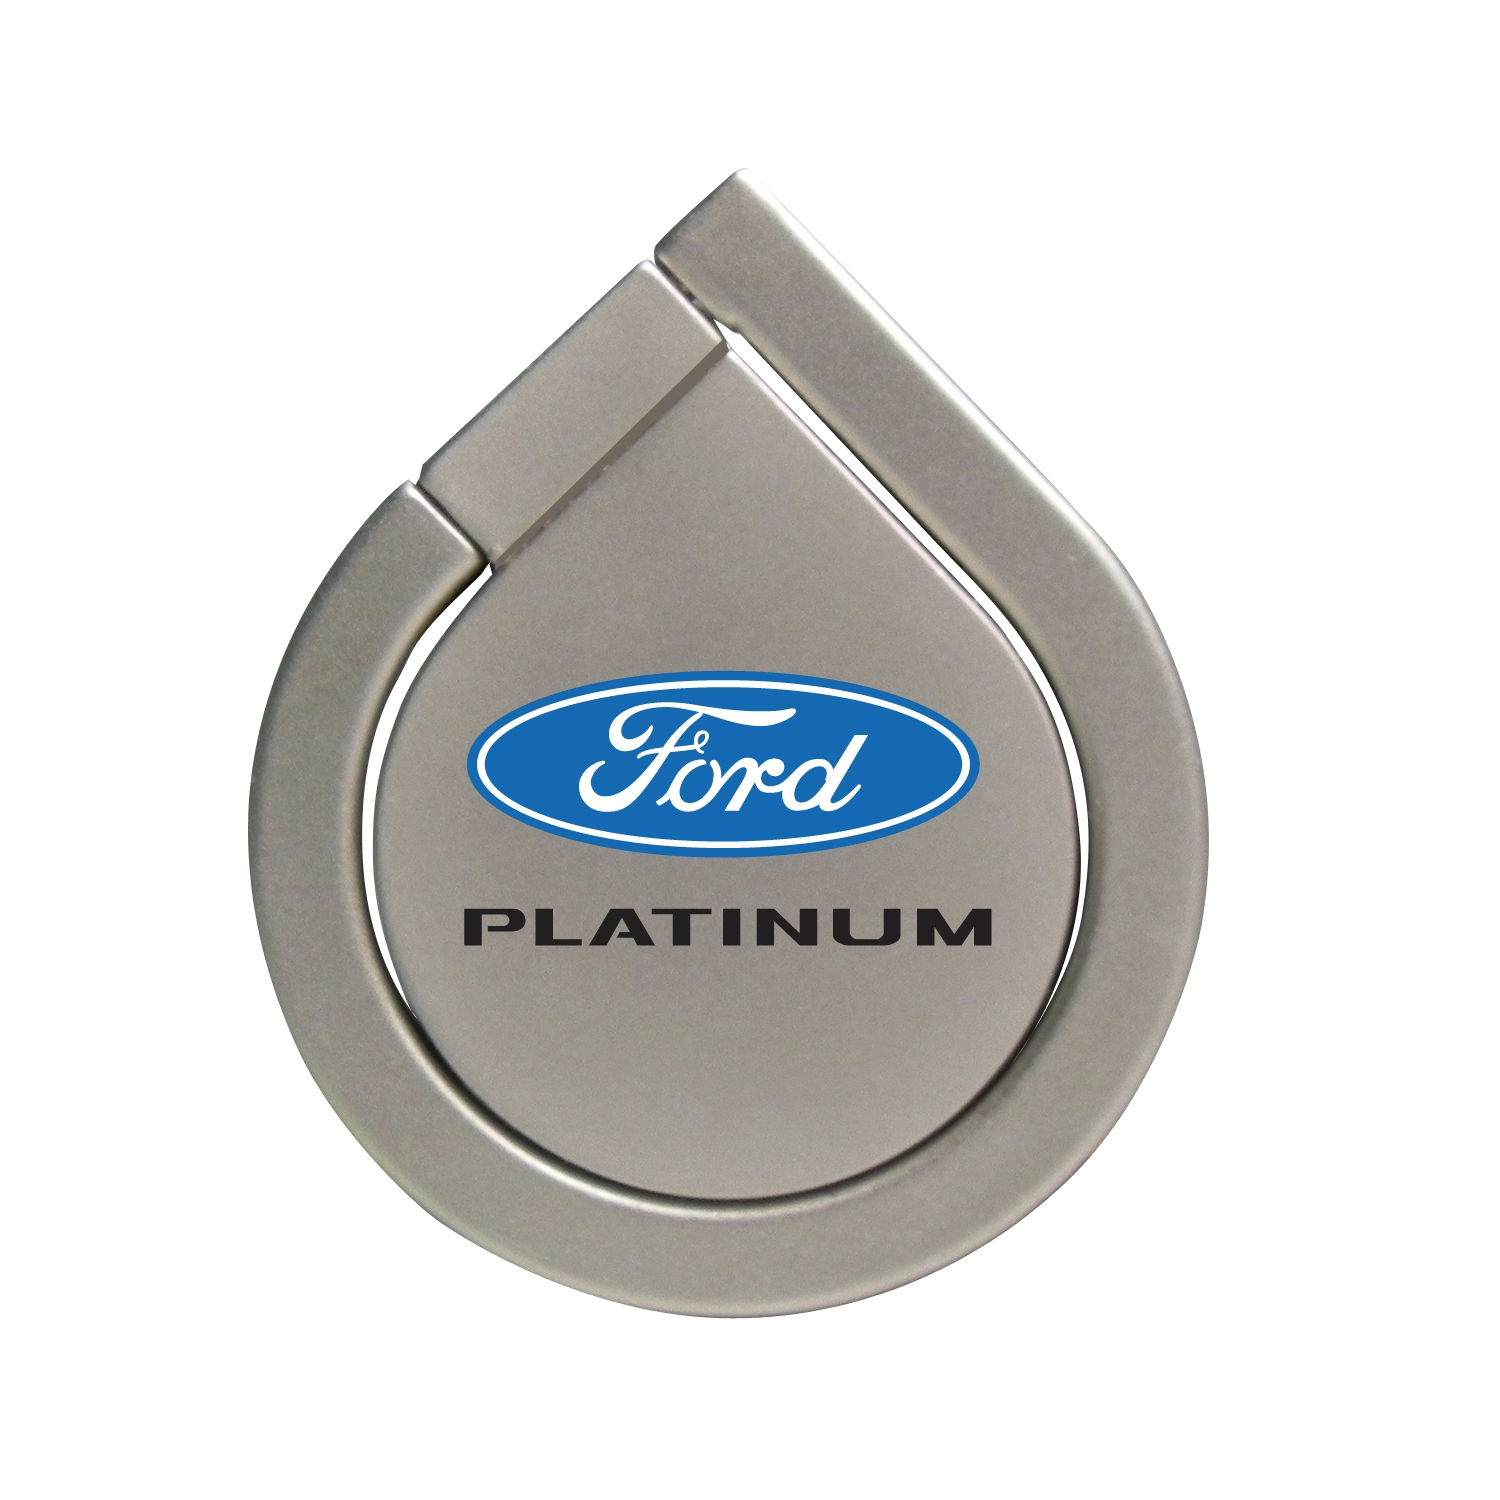 Ford F-150 Platinum Silver 360 Degree Rotation Finger Ring Holder for Cell Phone